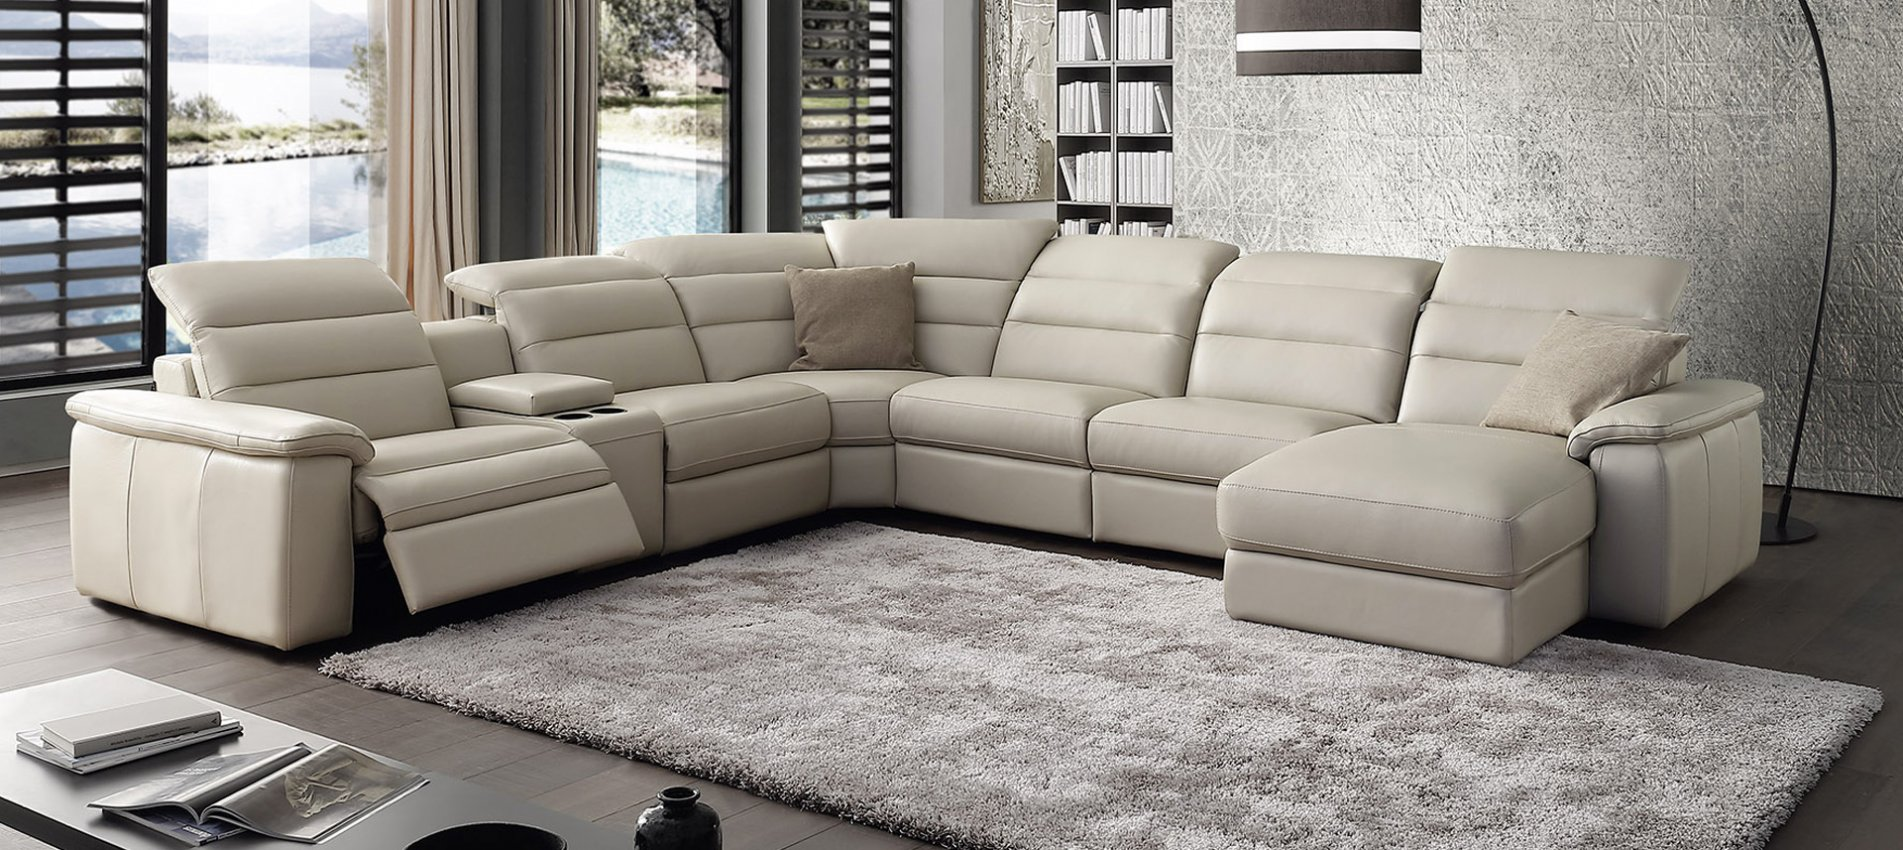 Canap cuir canap lit fauteuil relax chambres lit - Ikea canape cuir 2 places ...